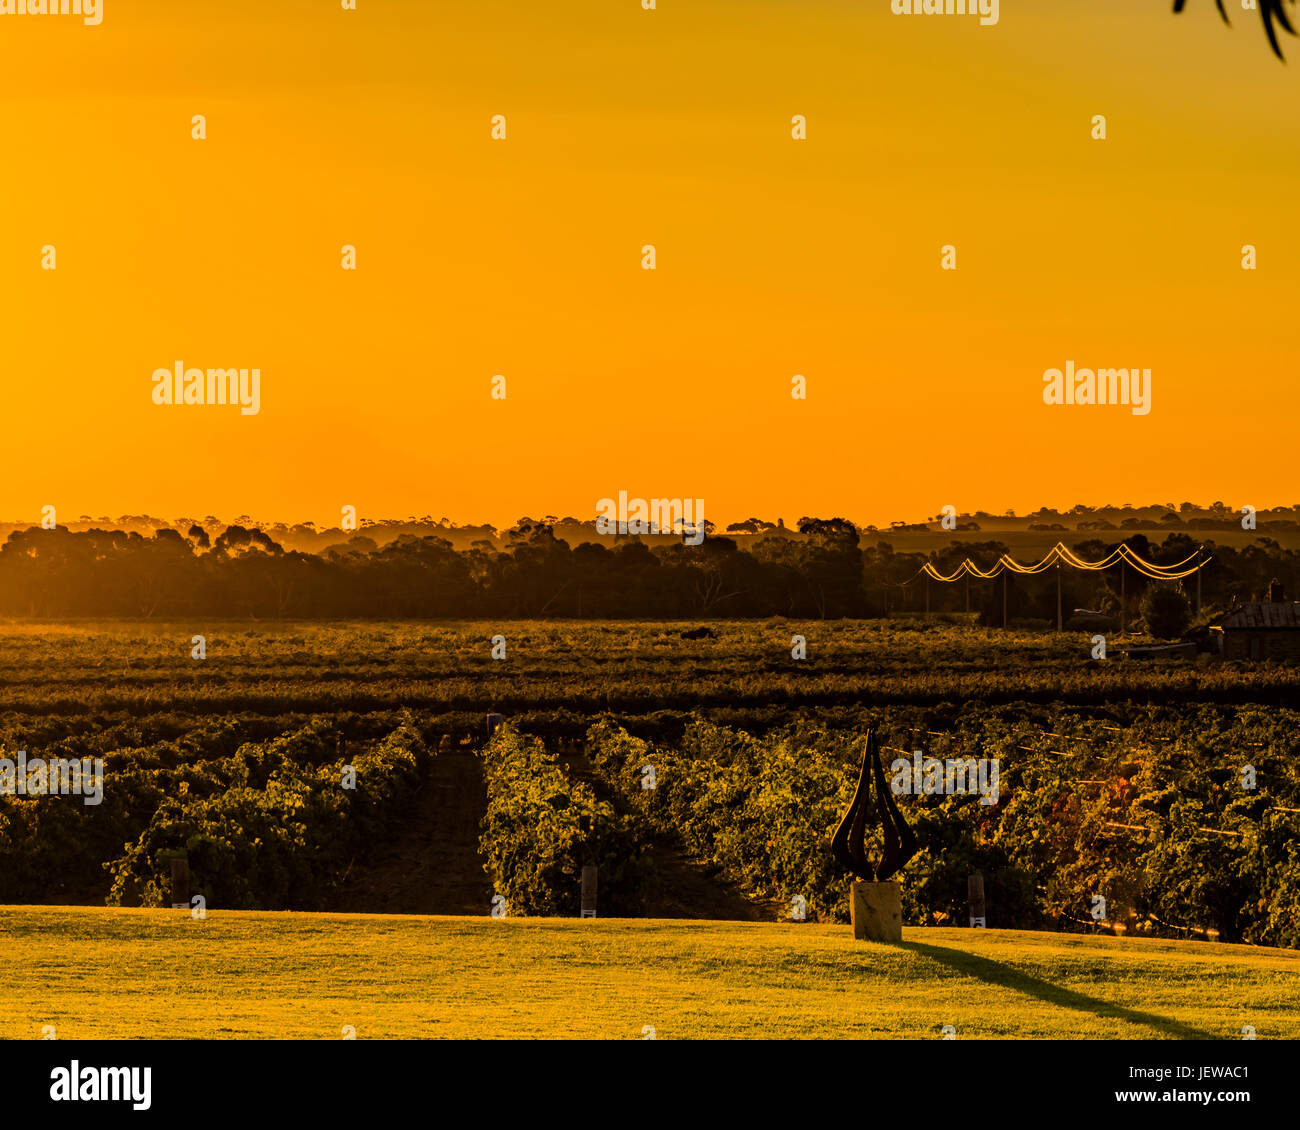 Looking over a vineyard at sunset in the Barossa Valley, South Australia Stock Photo